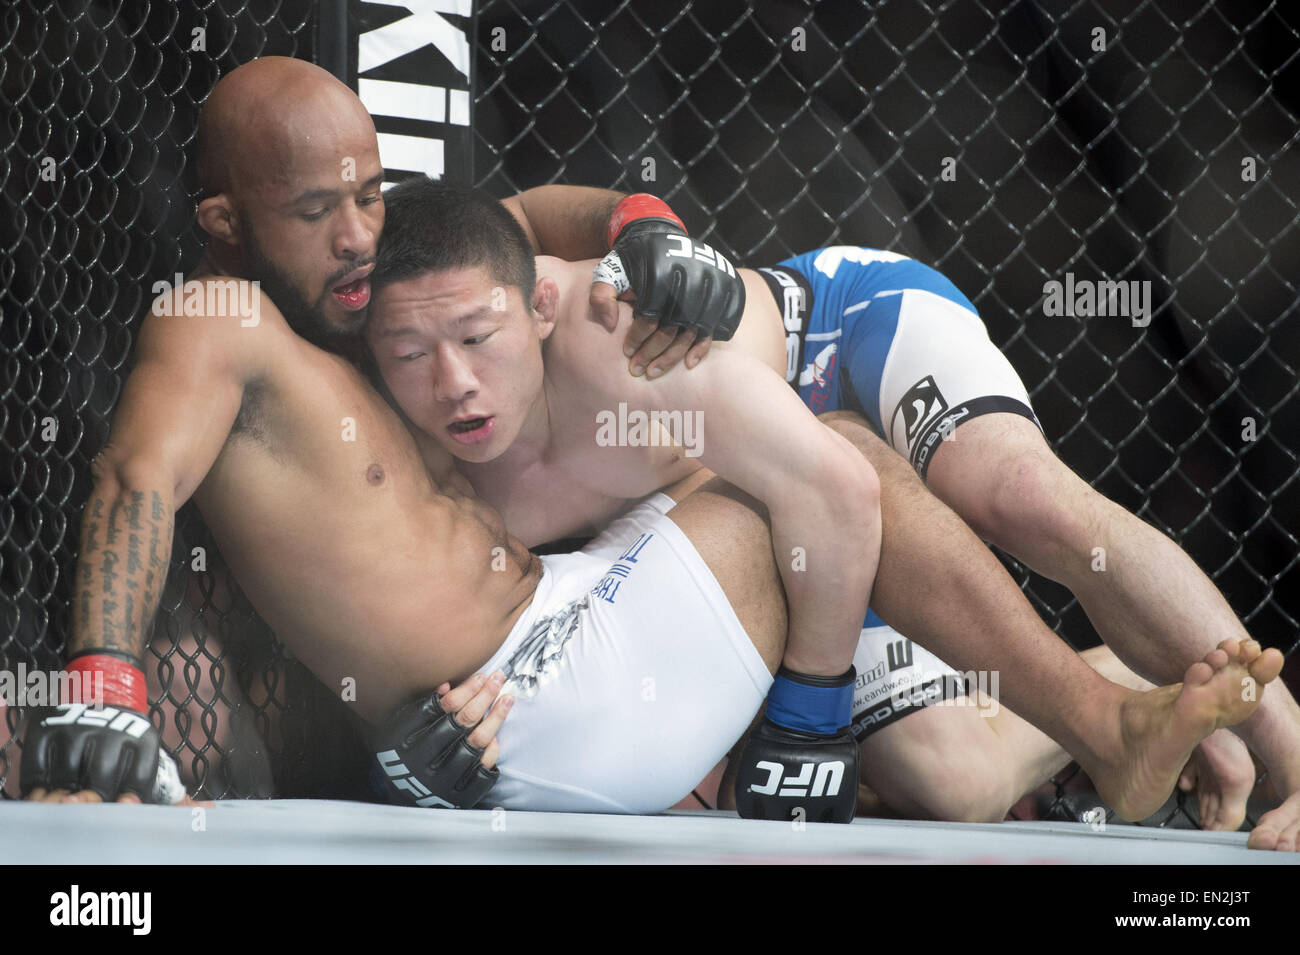 Montreal, Quebec, Canada. 25th Apr, 2015. DEMETRIOUS ''Mighty Mouse'' JOHNSON and KYOJI HORIGUCHI - Stock Image